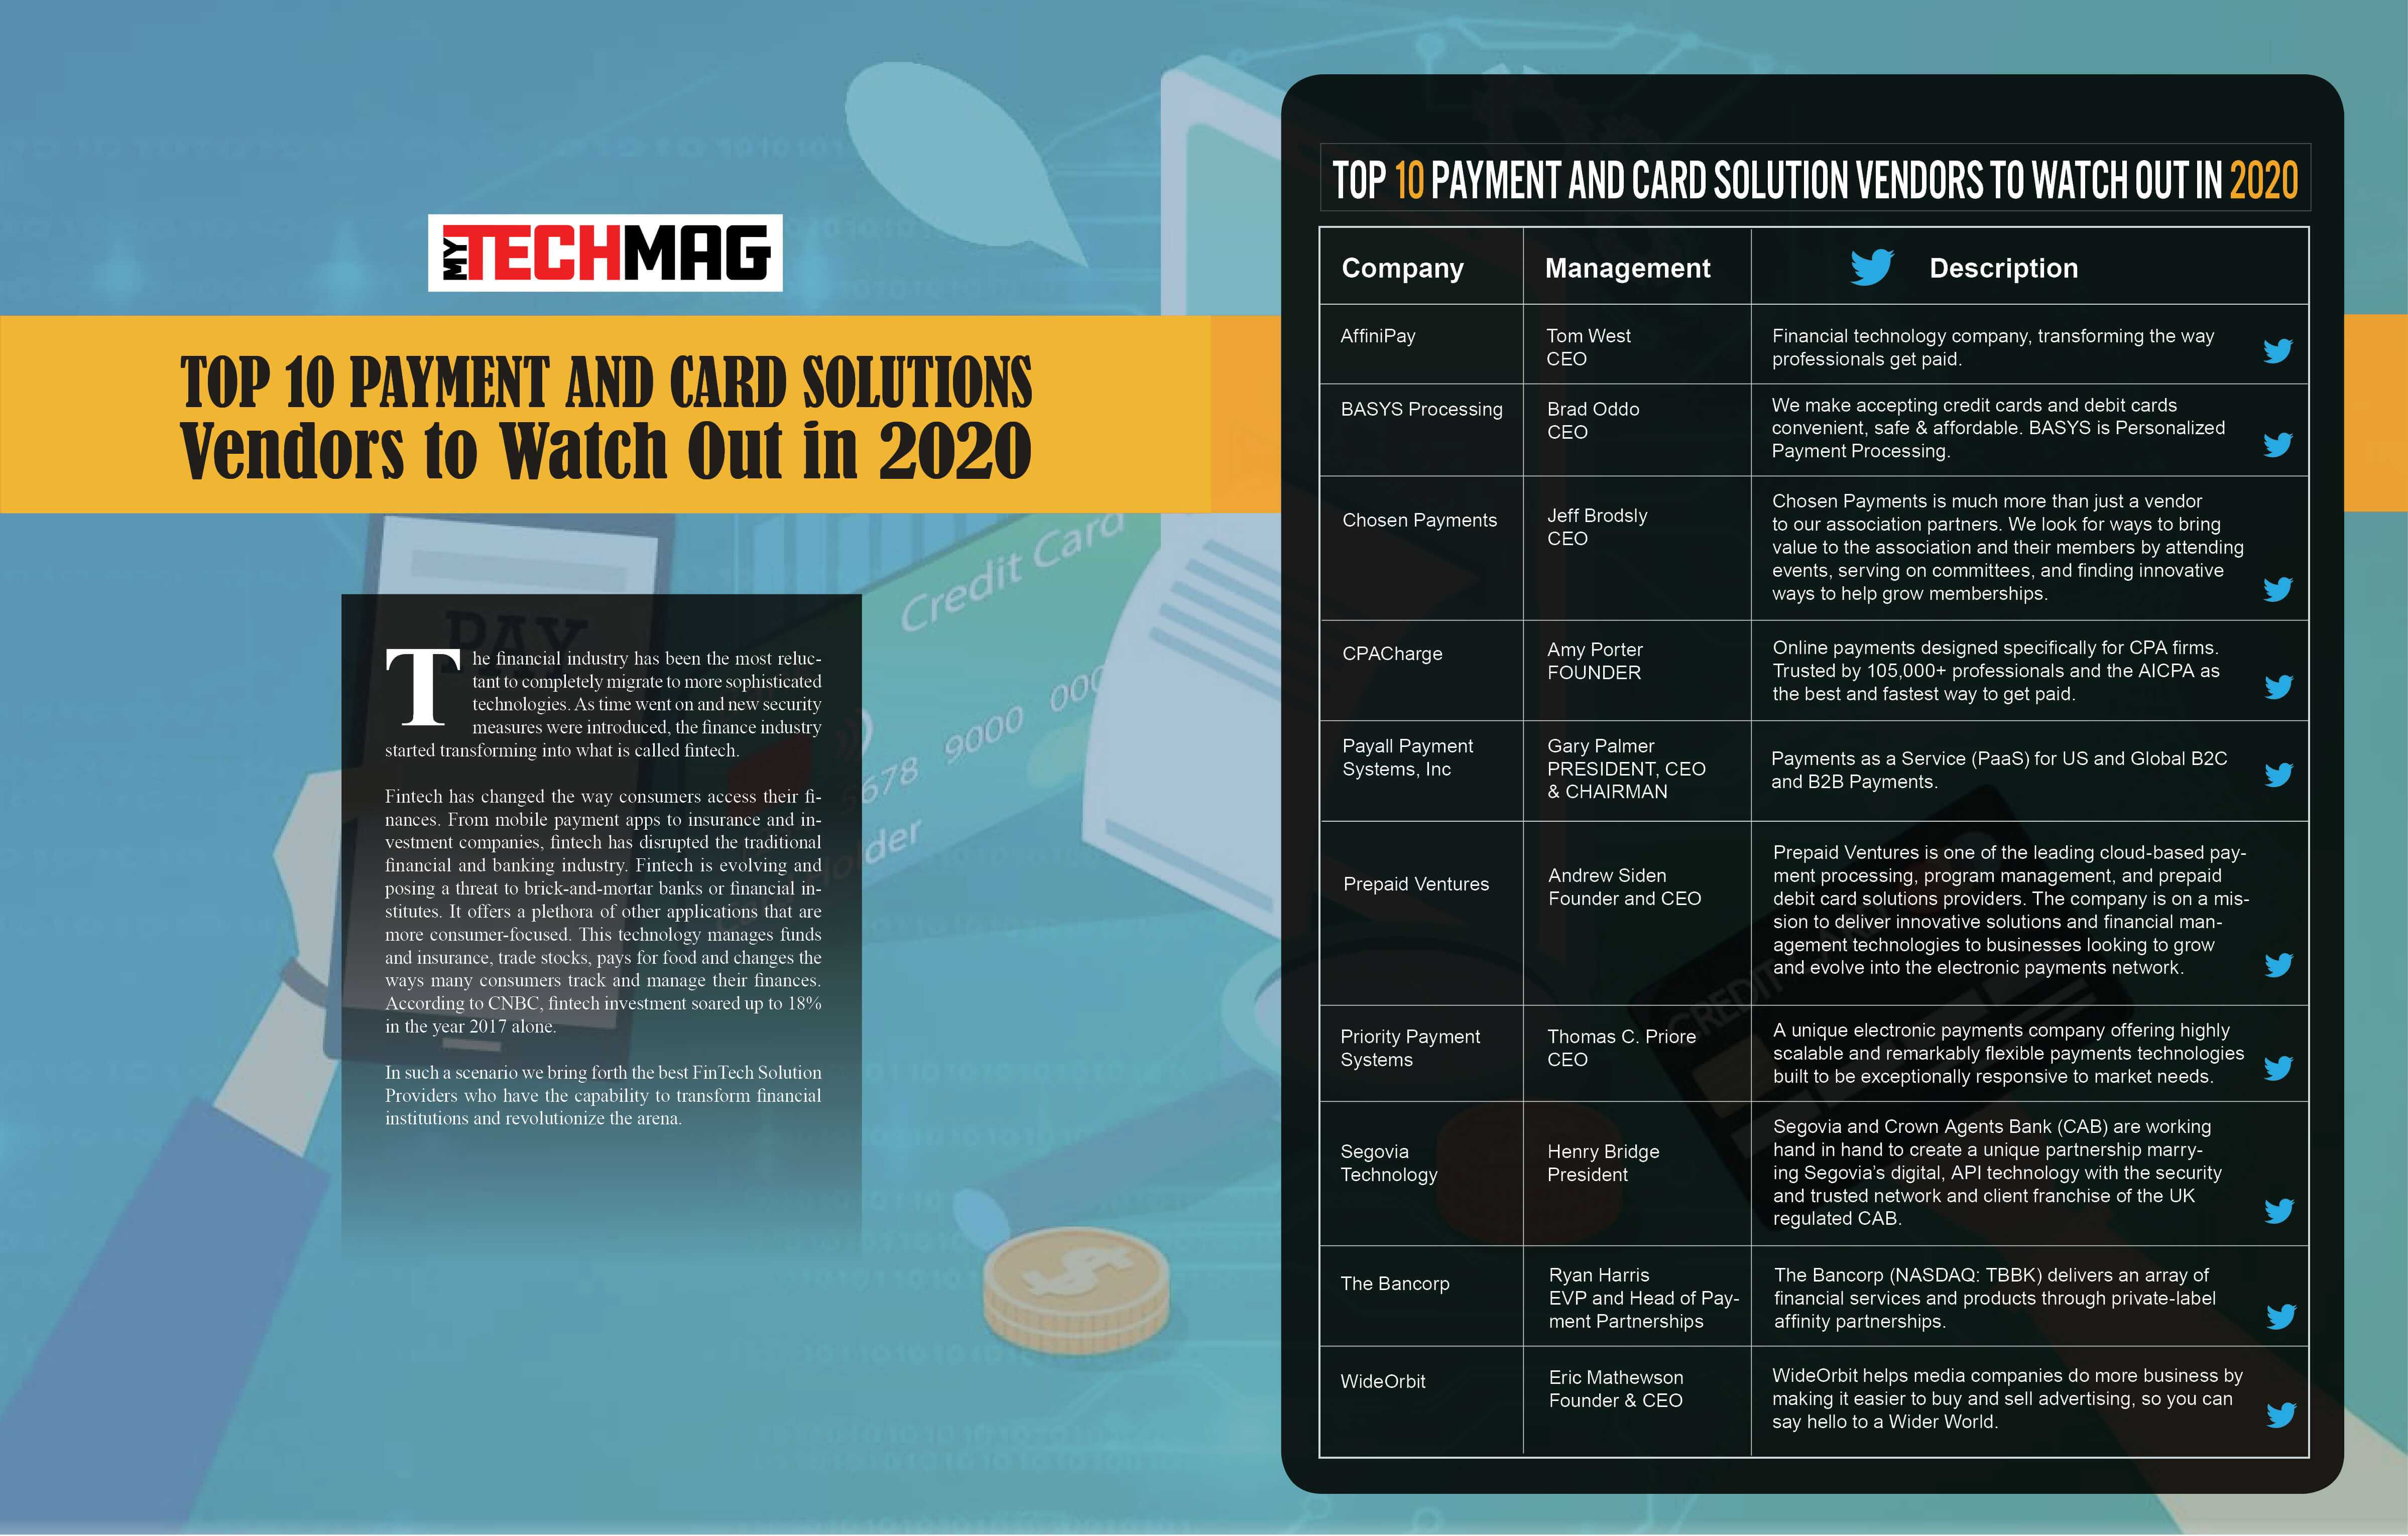 Top 10 Payment and Card Solution Vendors 2020